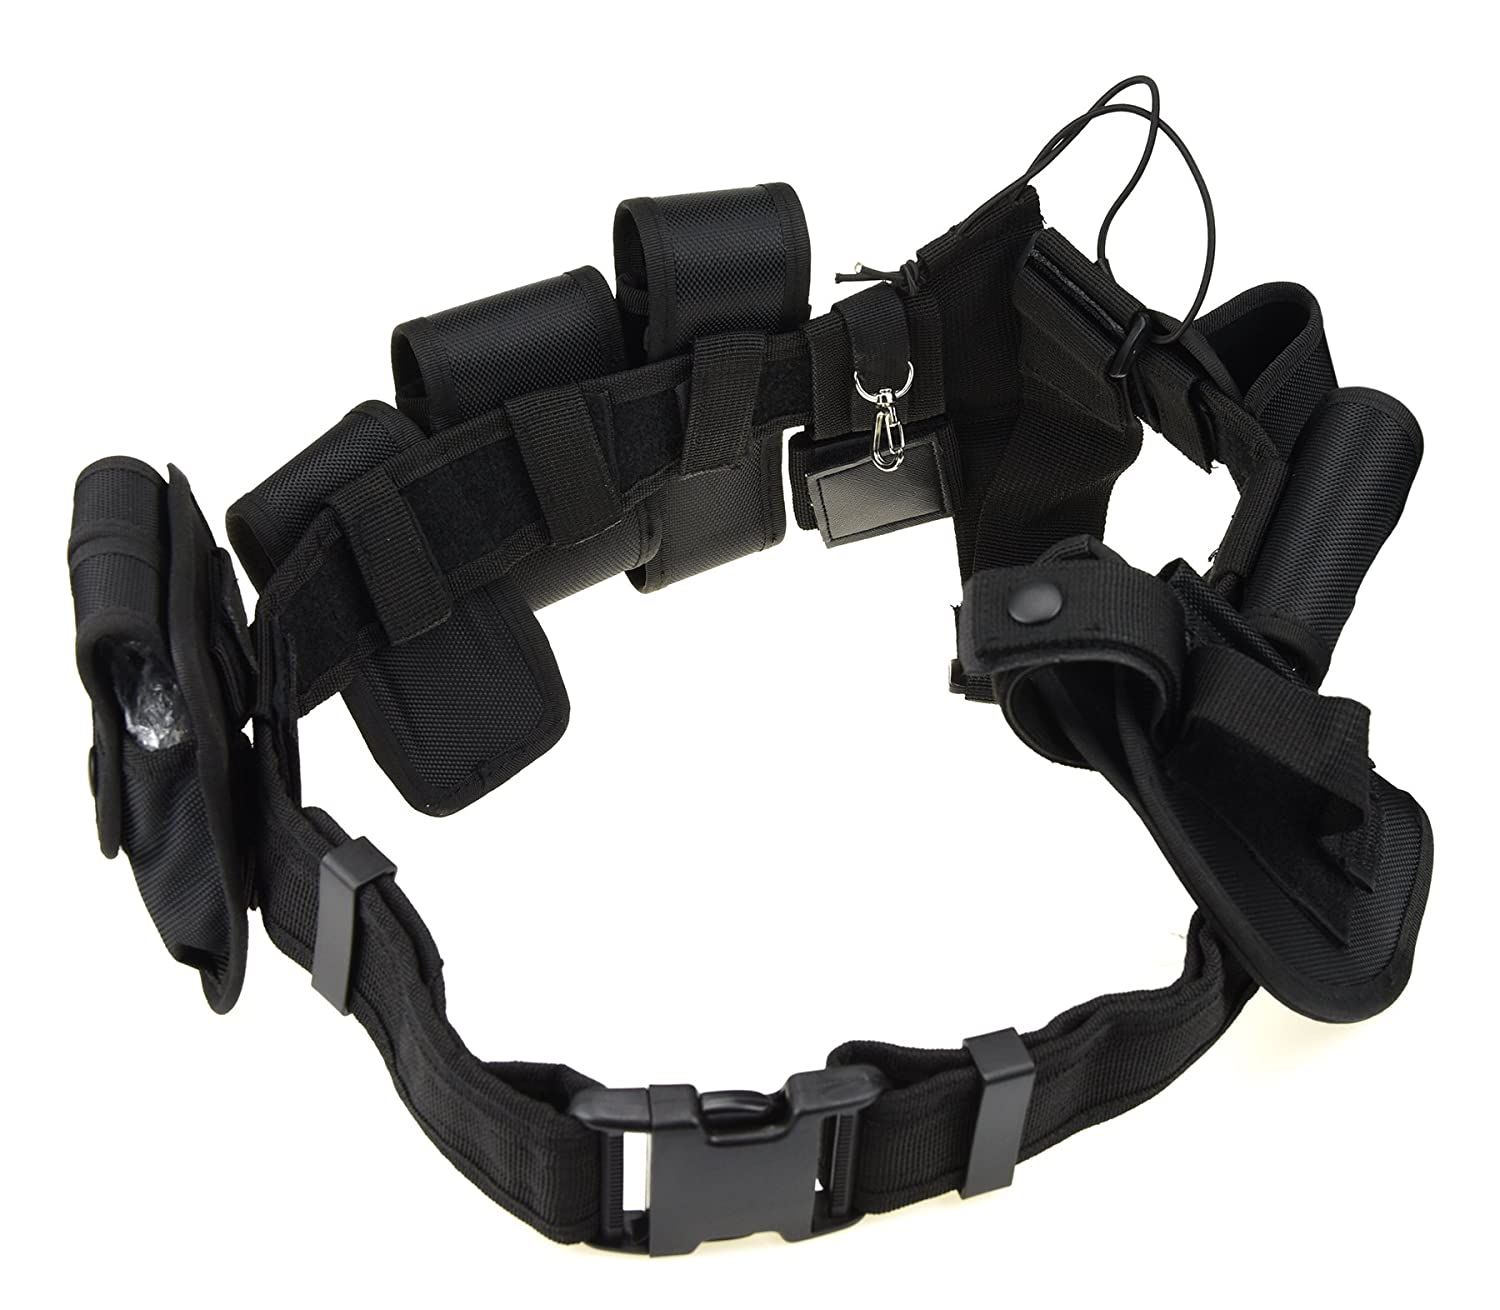 10pcs Tactical Duty Belt Police Guard Utility Kit Durable Removable Utility Equipment System// for Outdoor Security Black